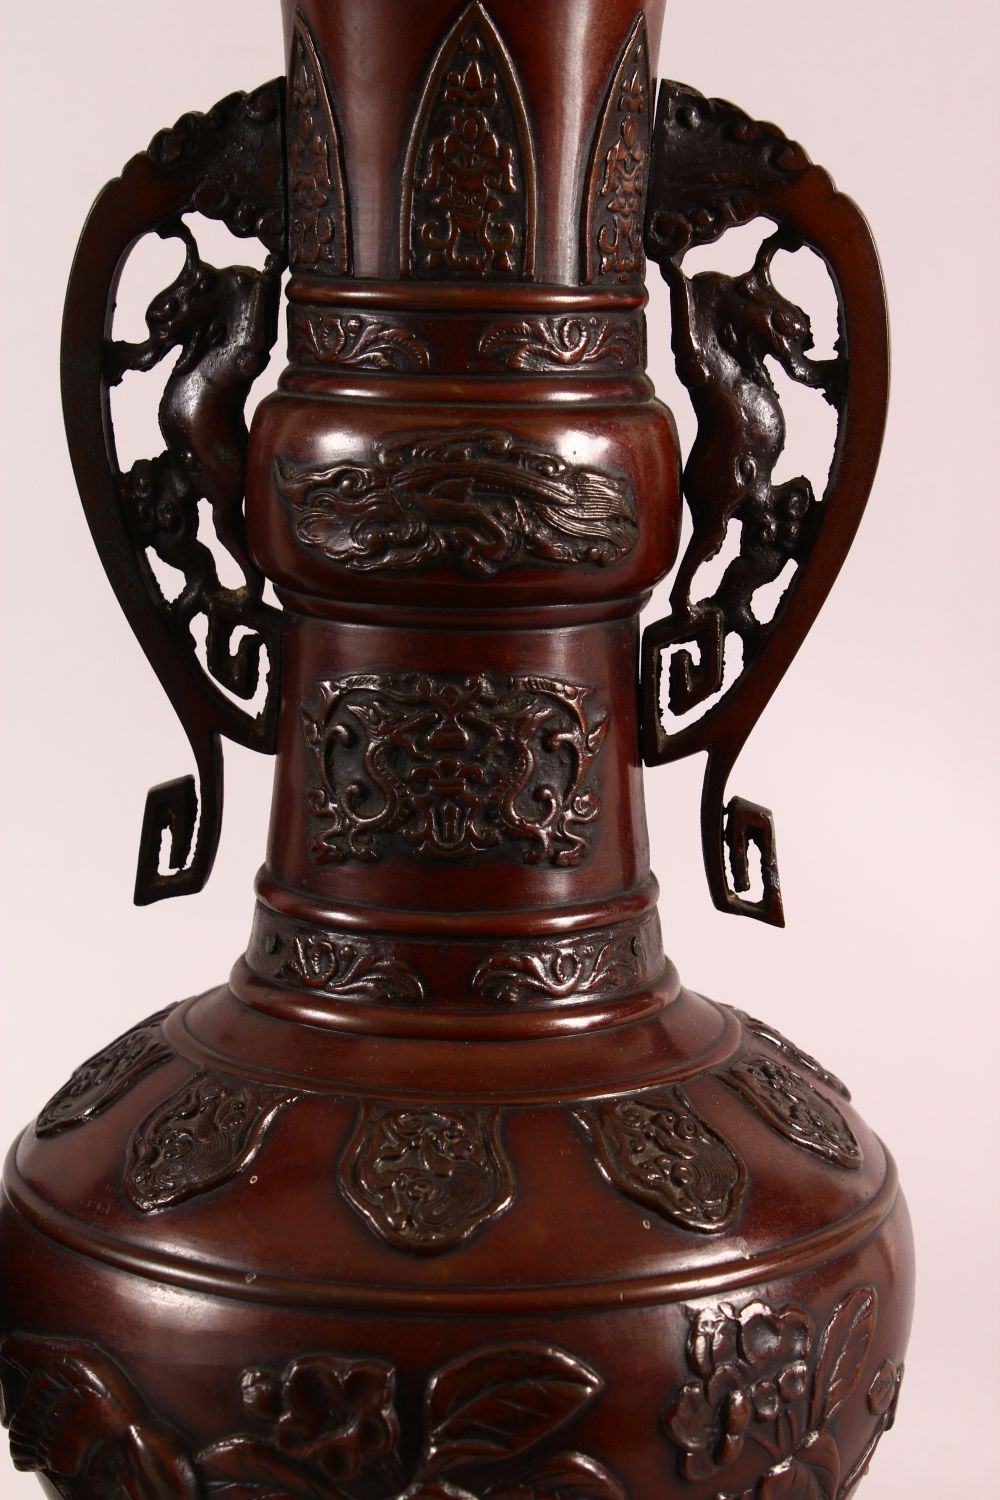 A PAIR OF JAPANESE RELIEF BRONZE VASES, with twin handles, relief birds and flora decoration, 40cm - Image 3 of 7